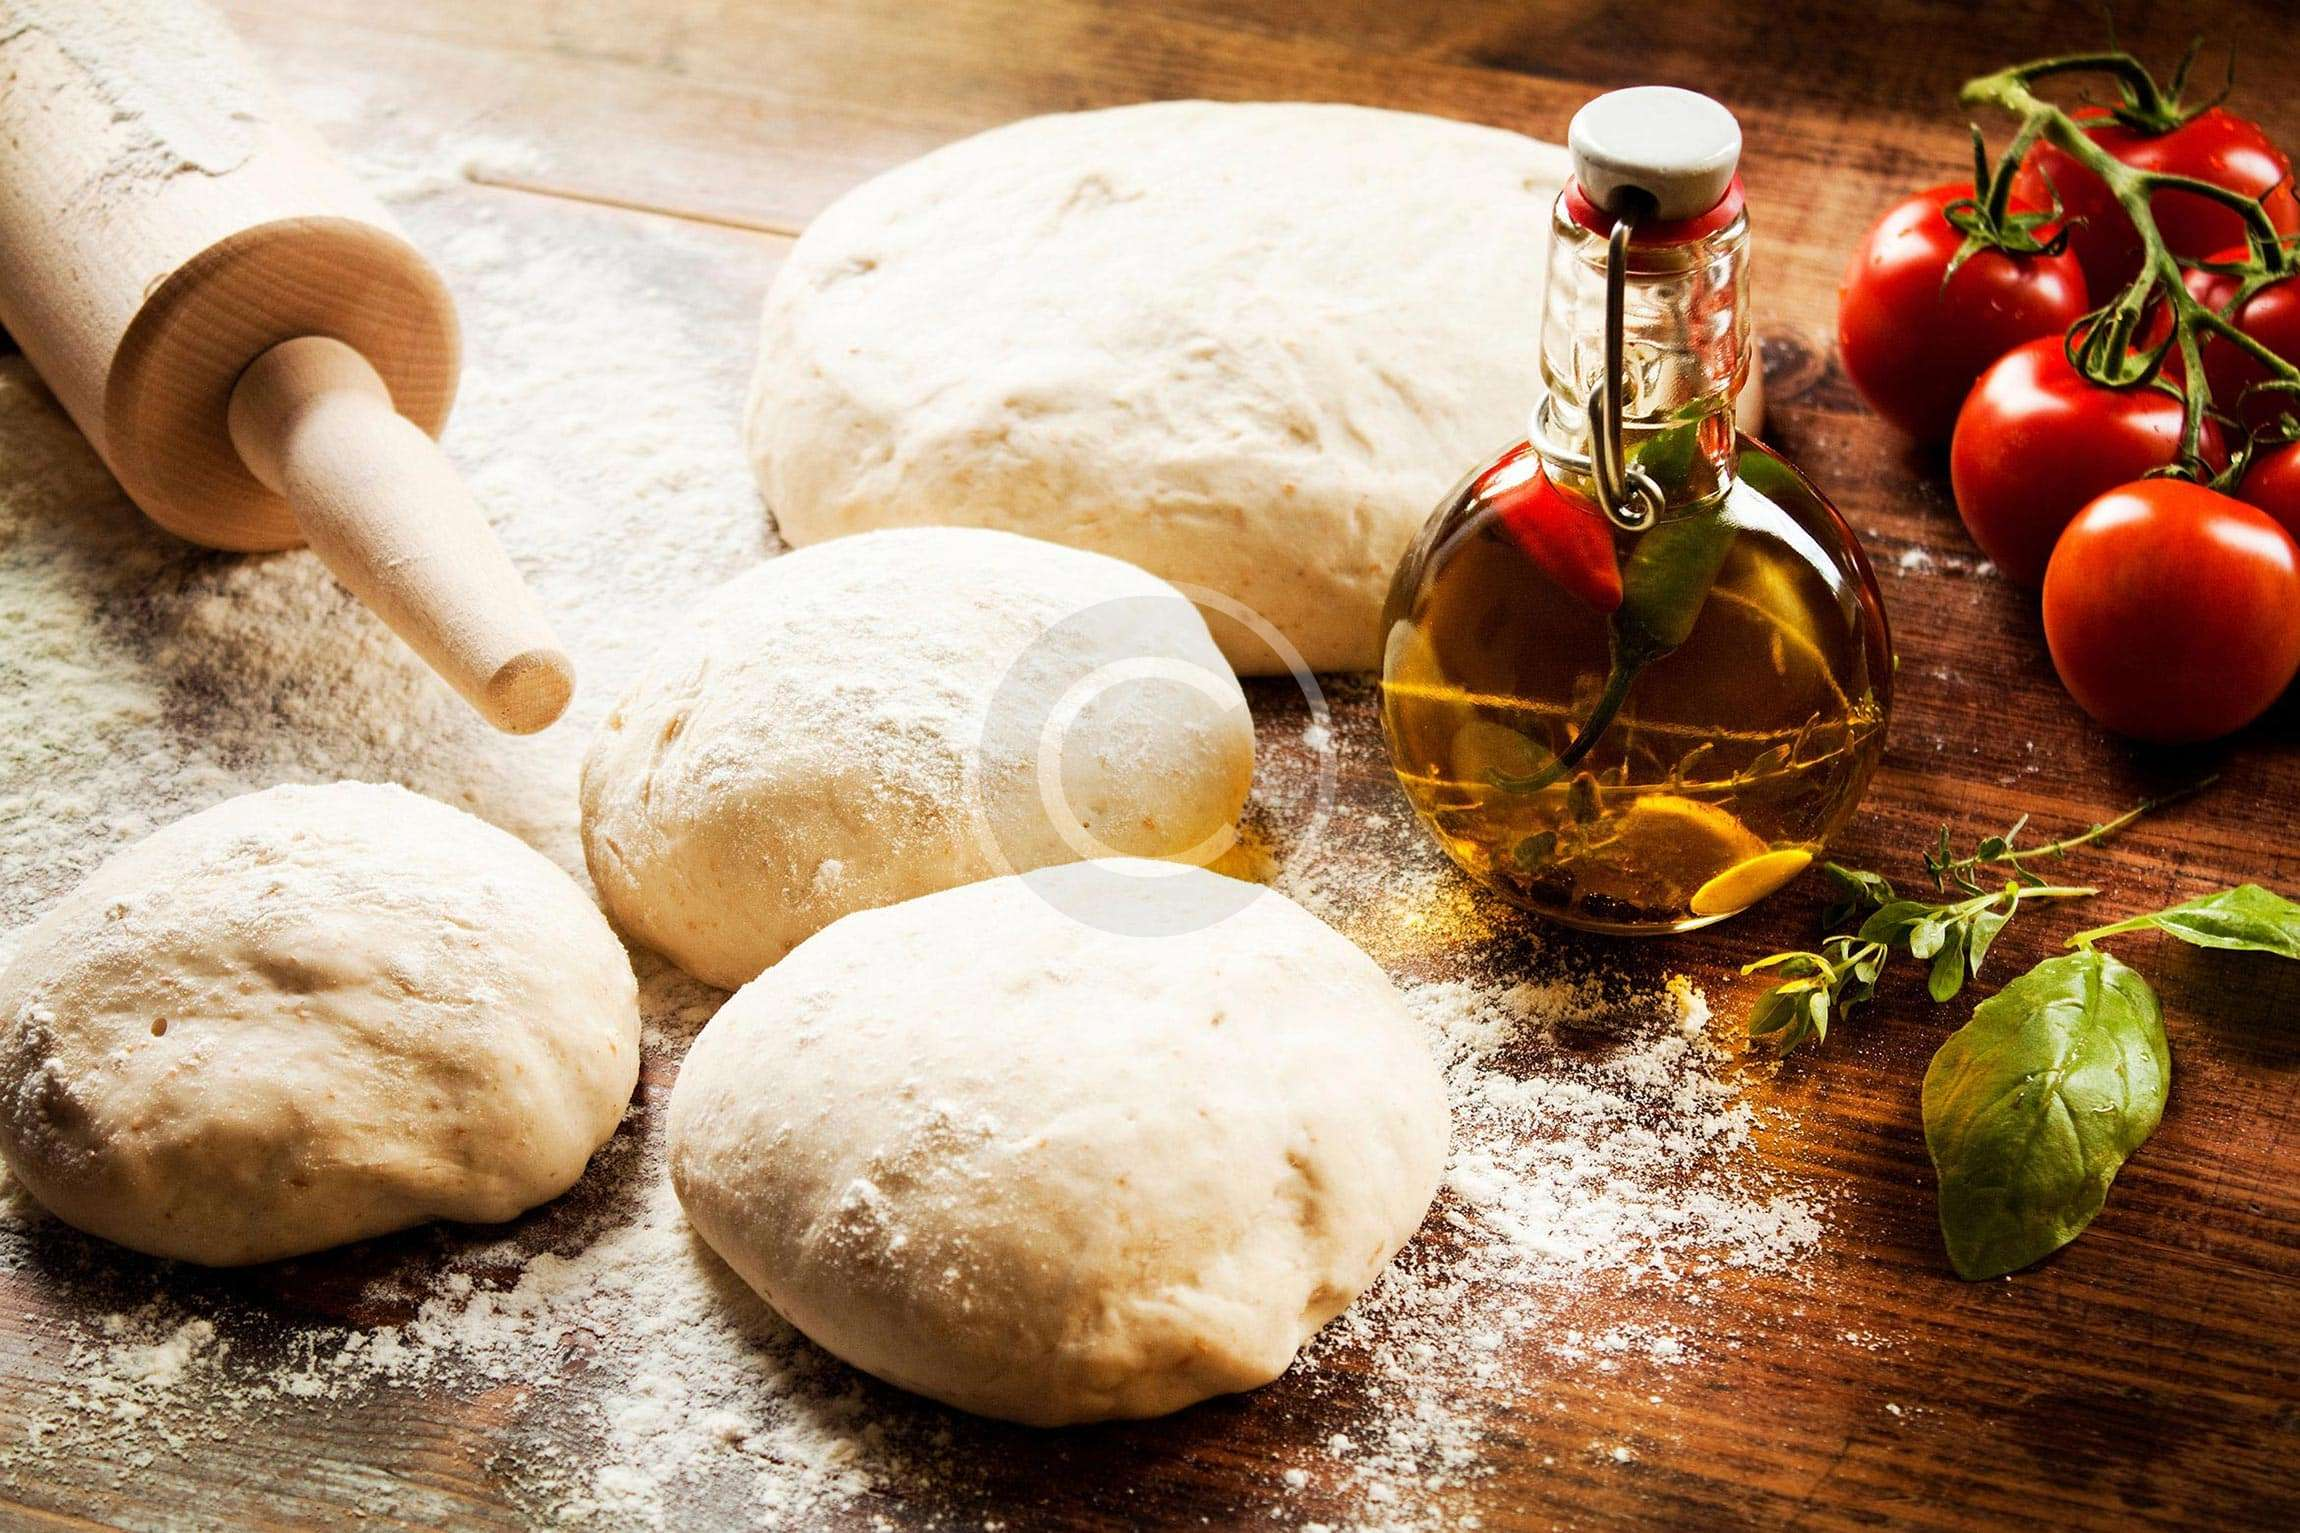 The Food Lab: How To Make Awesome Pizza at Home